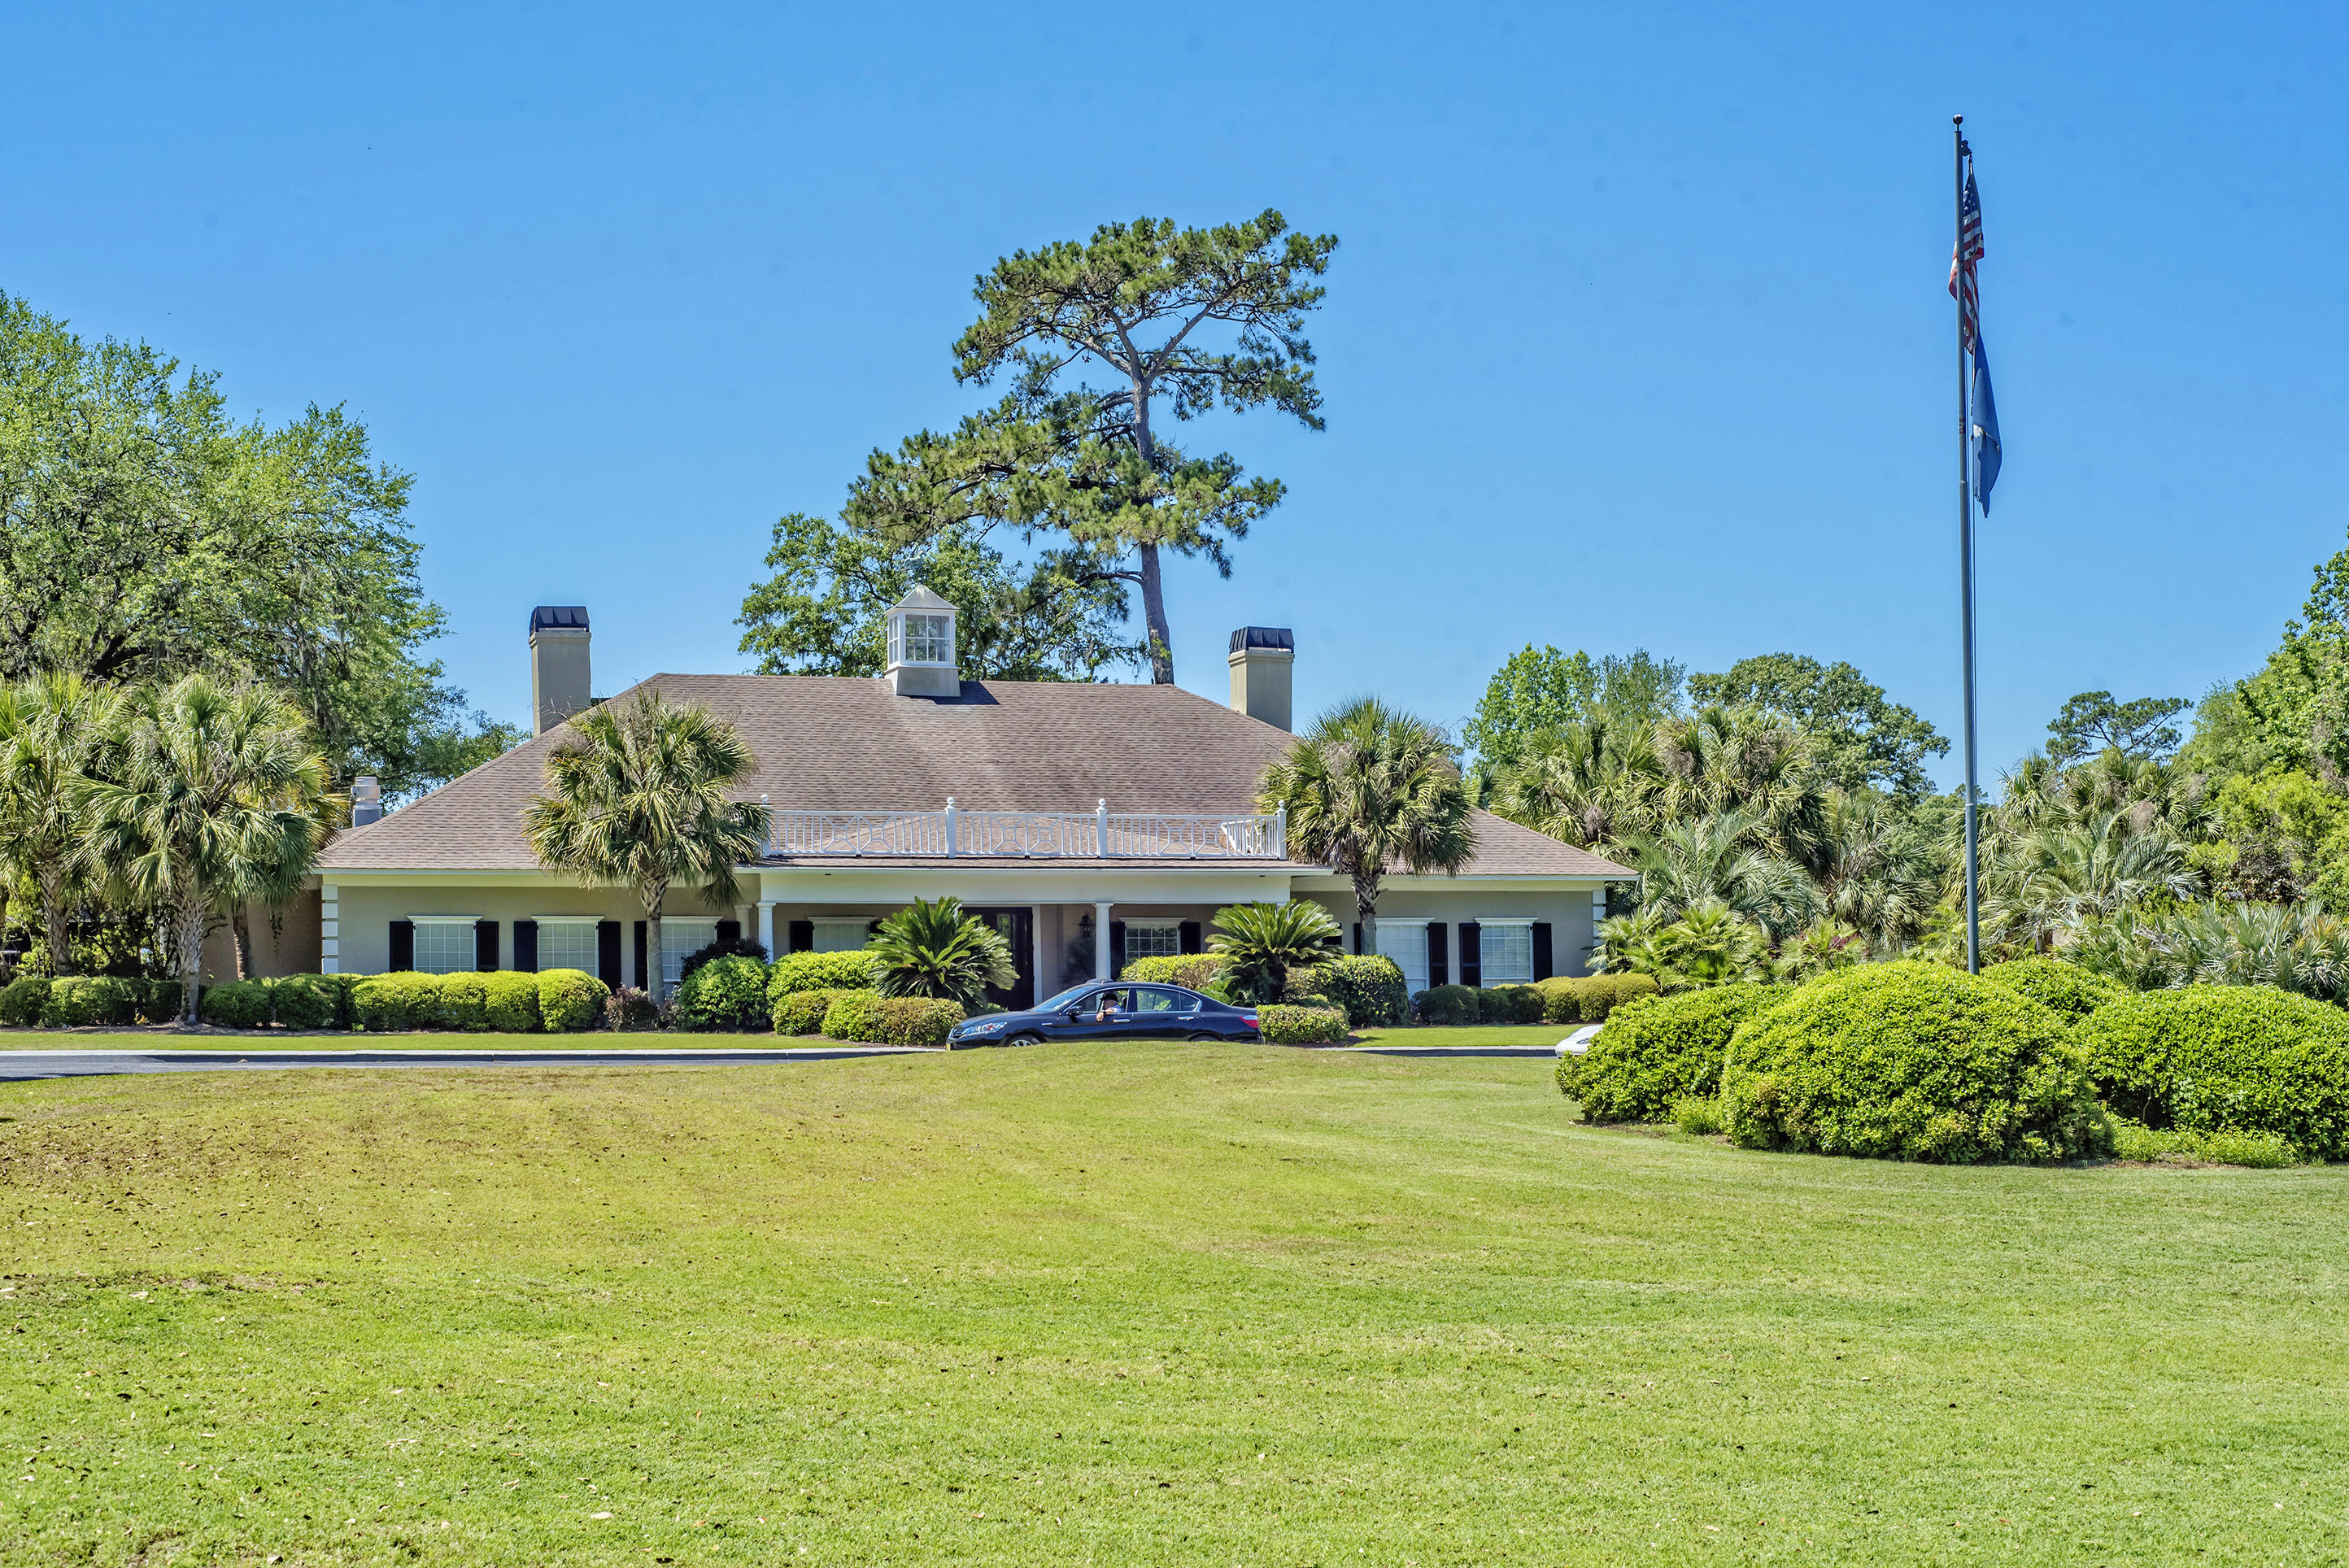 Stono Ferry Homes For Sale - 5104 St Ann, Hollywood, SC - 25